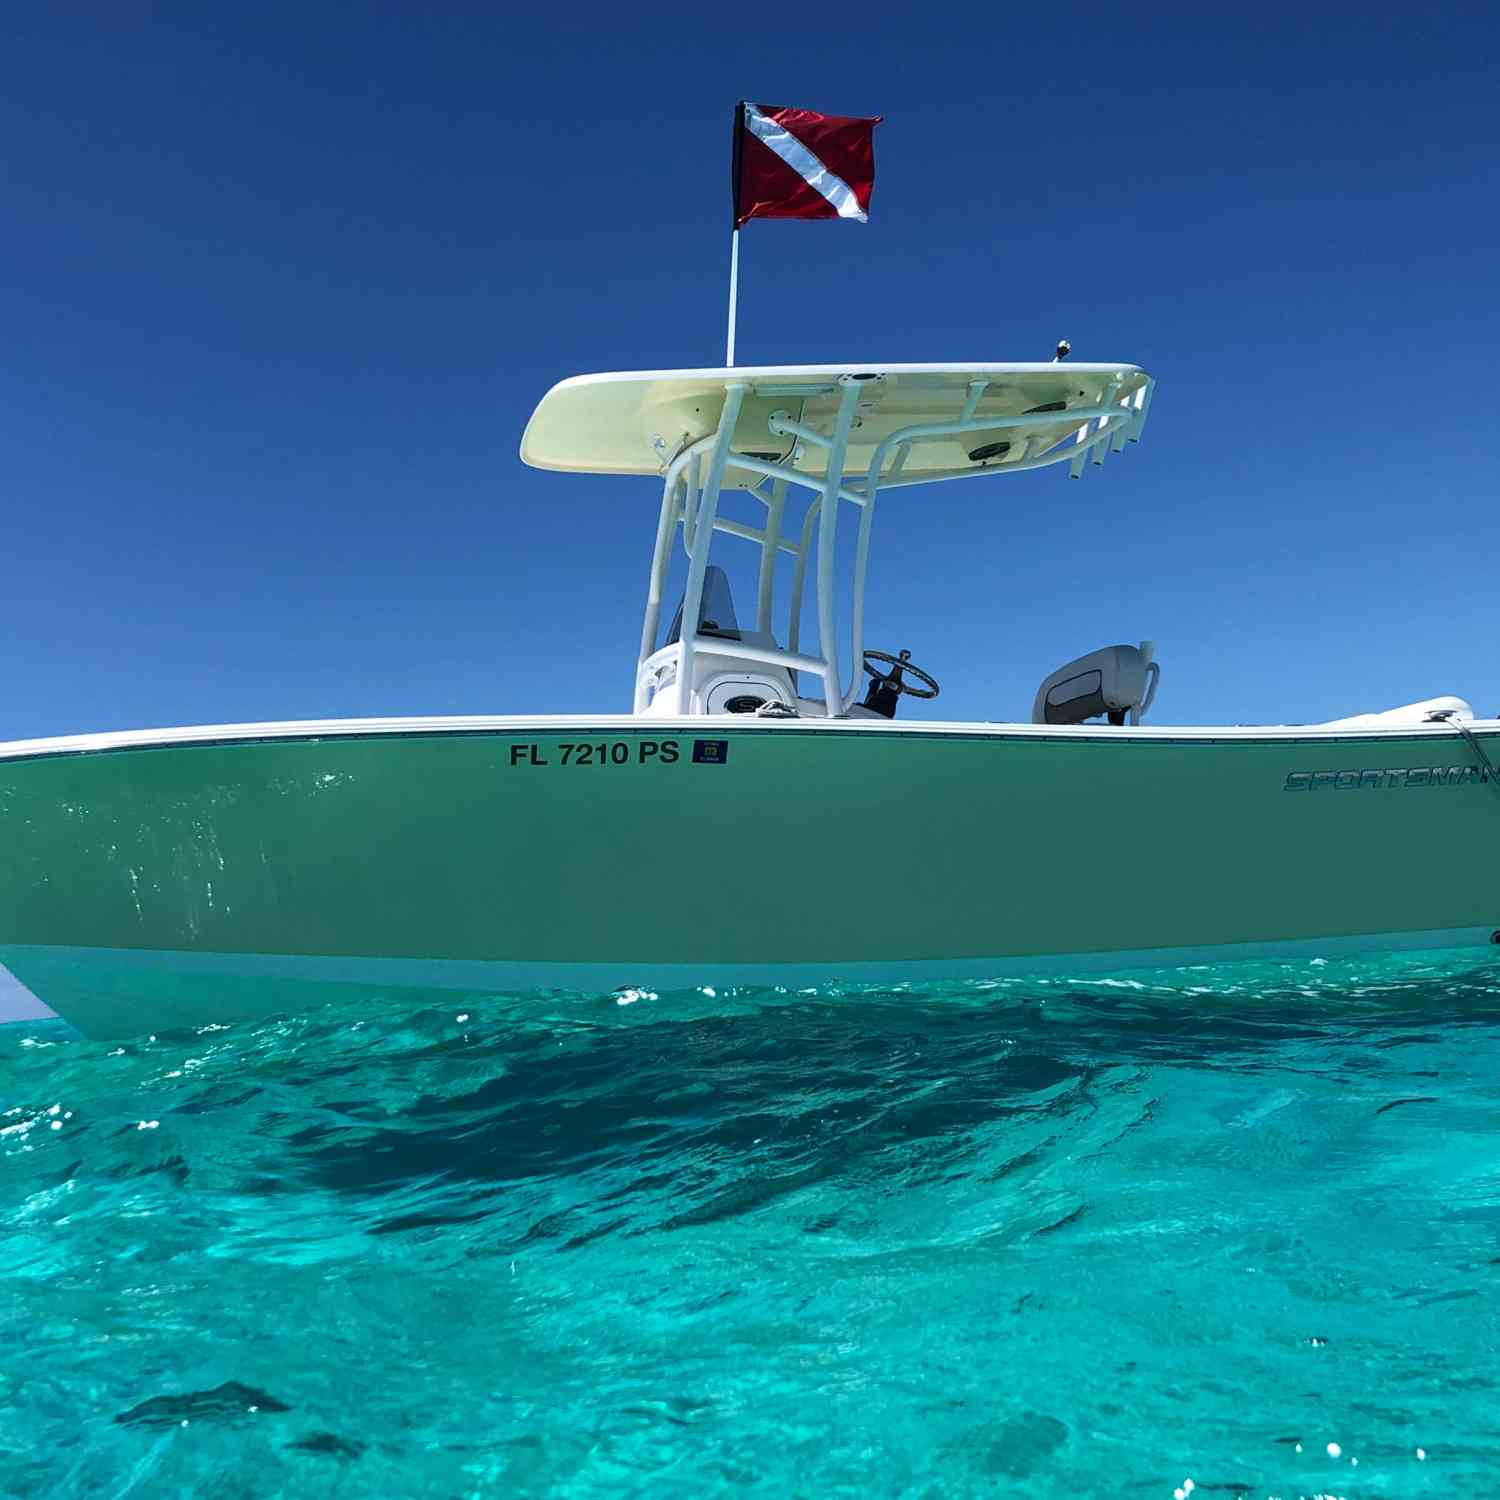 Title: Perfect day in key largo - On board their Sportsman Heritage 231 Center Console - Location: Key largo. Participating in the Photo Contest #SportsmanSeptember2020